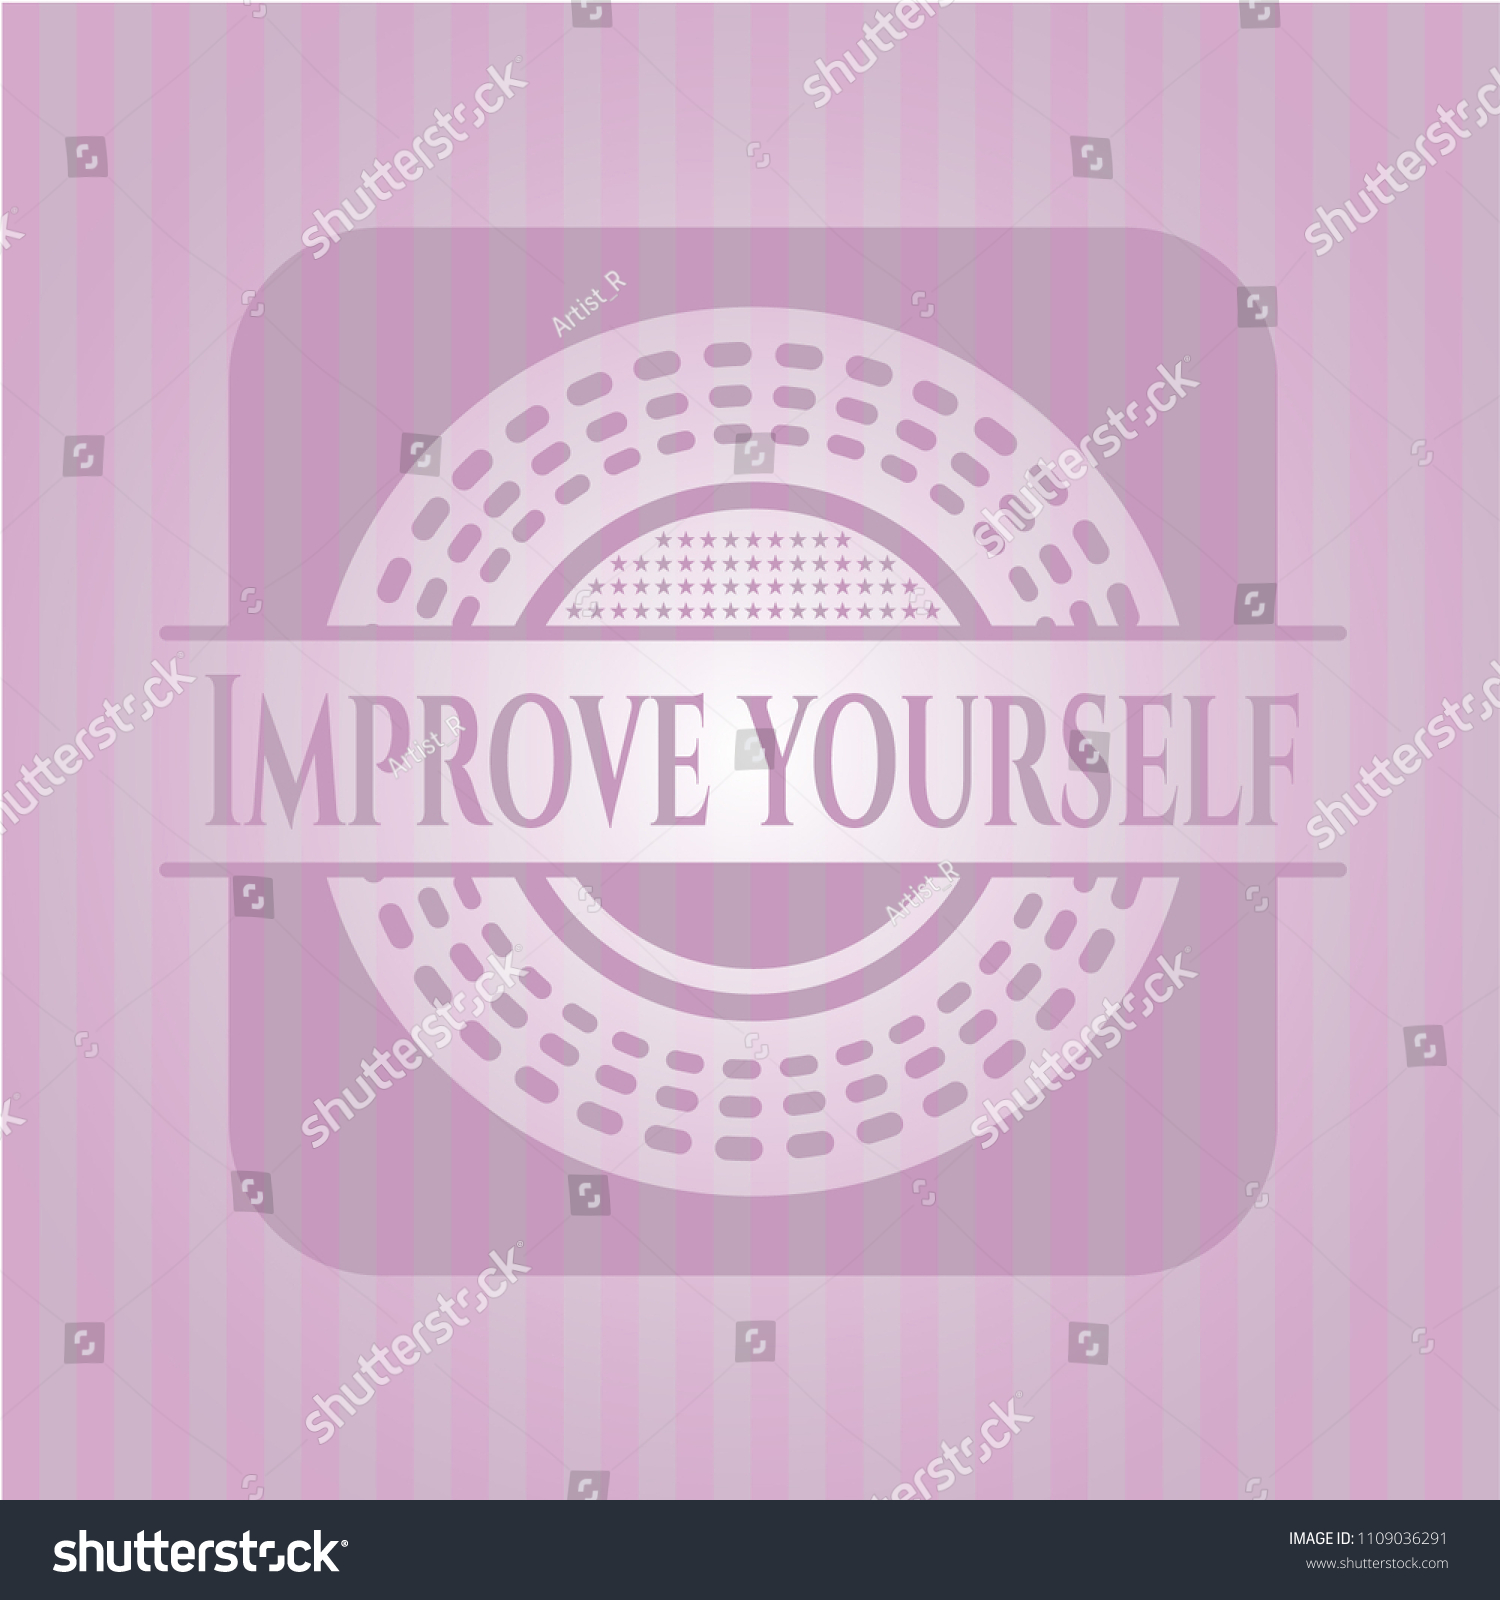 Improve Yourself Retro Style Pink Emblem